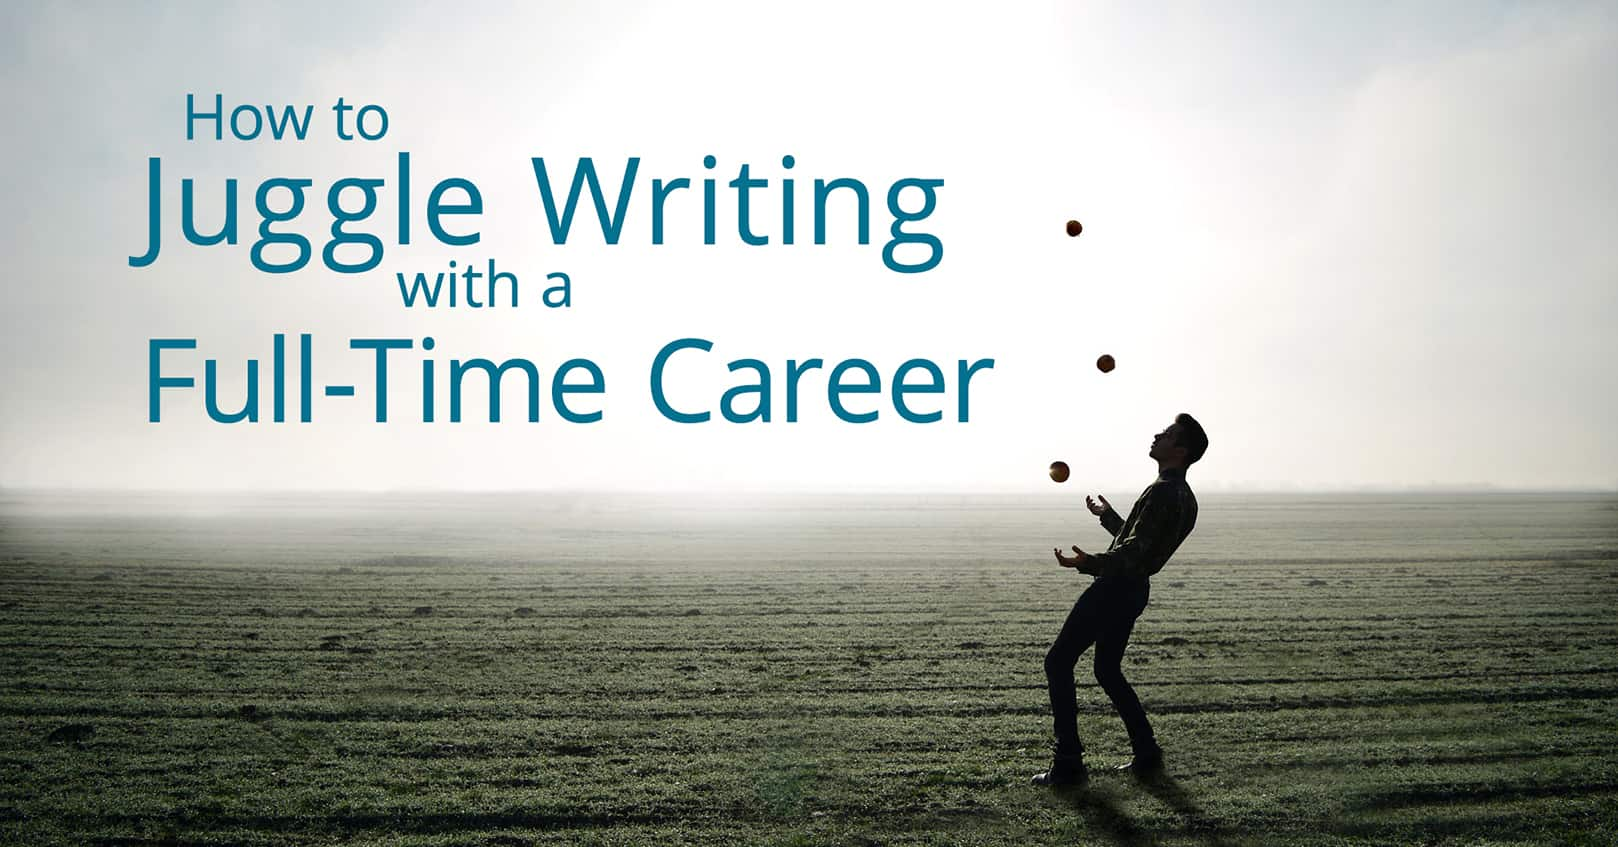 juggle writing with a full-time career